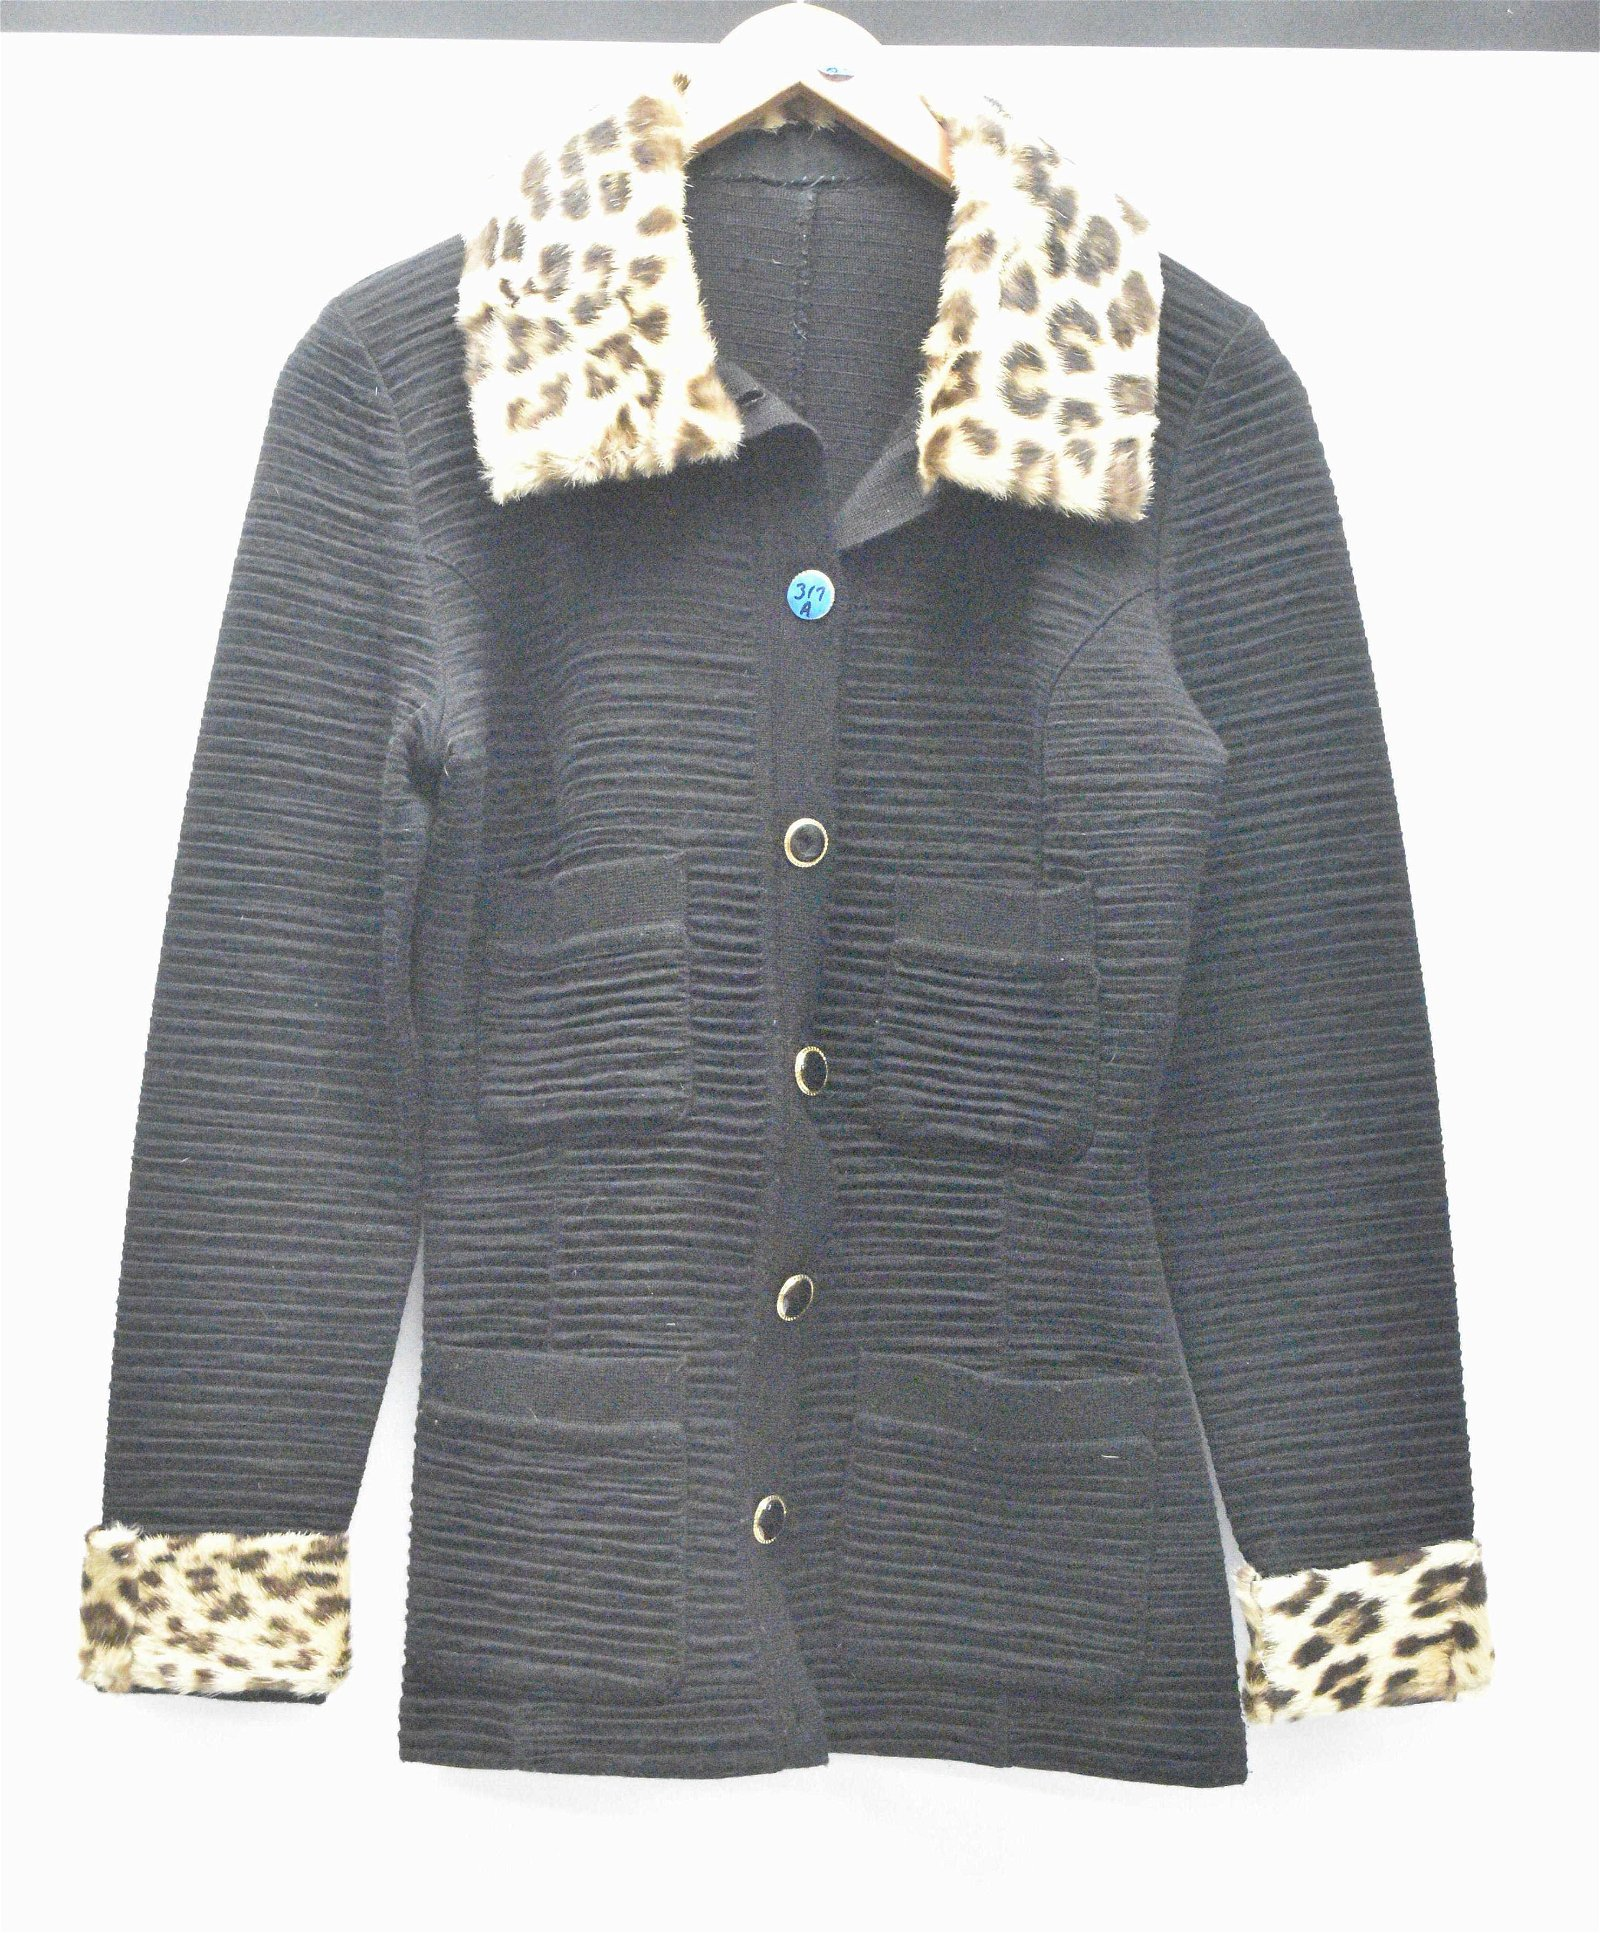 1940's Jacket with a Fur Collar